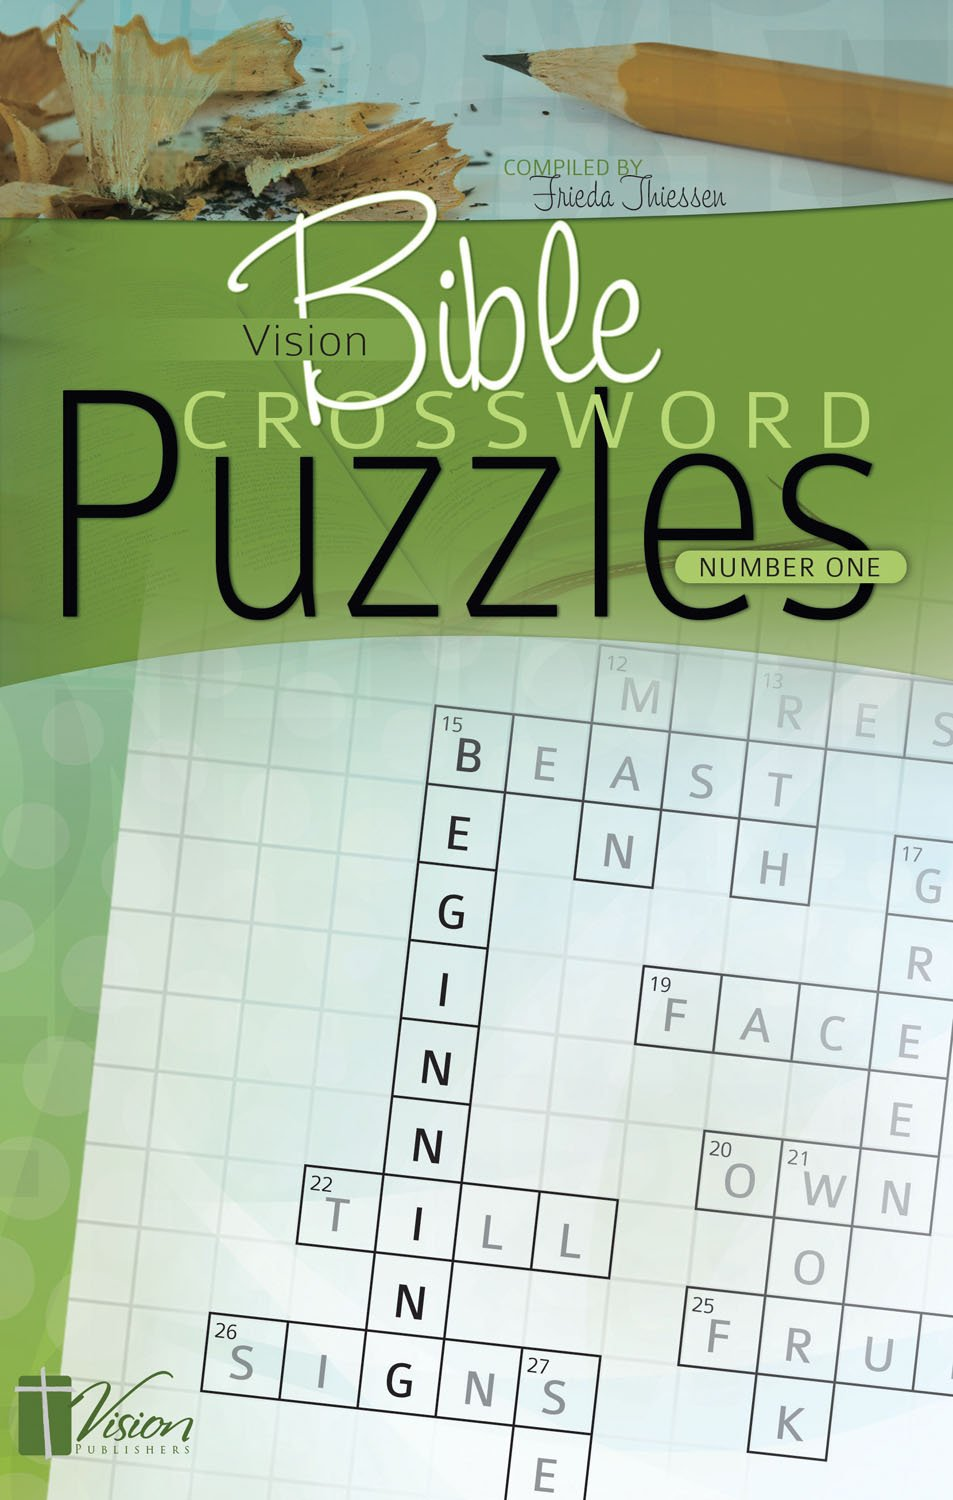 Download Vision Bible Crossword Puzzles Number One pdf